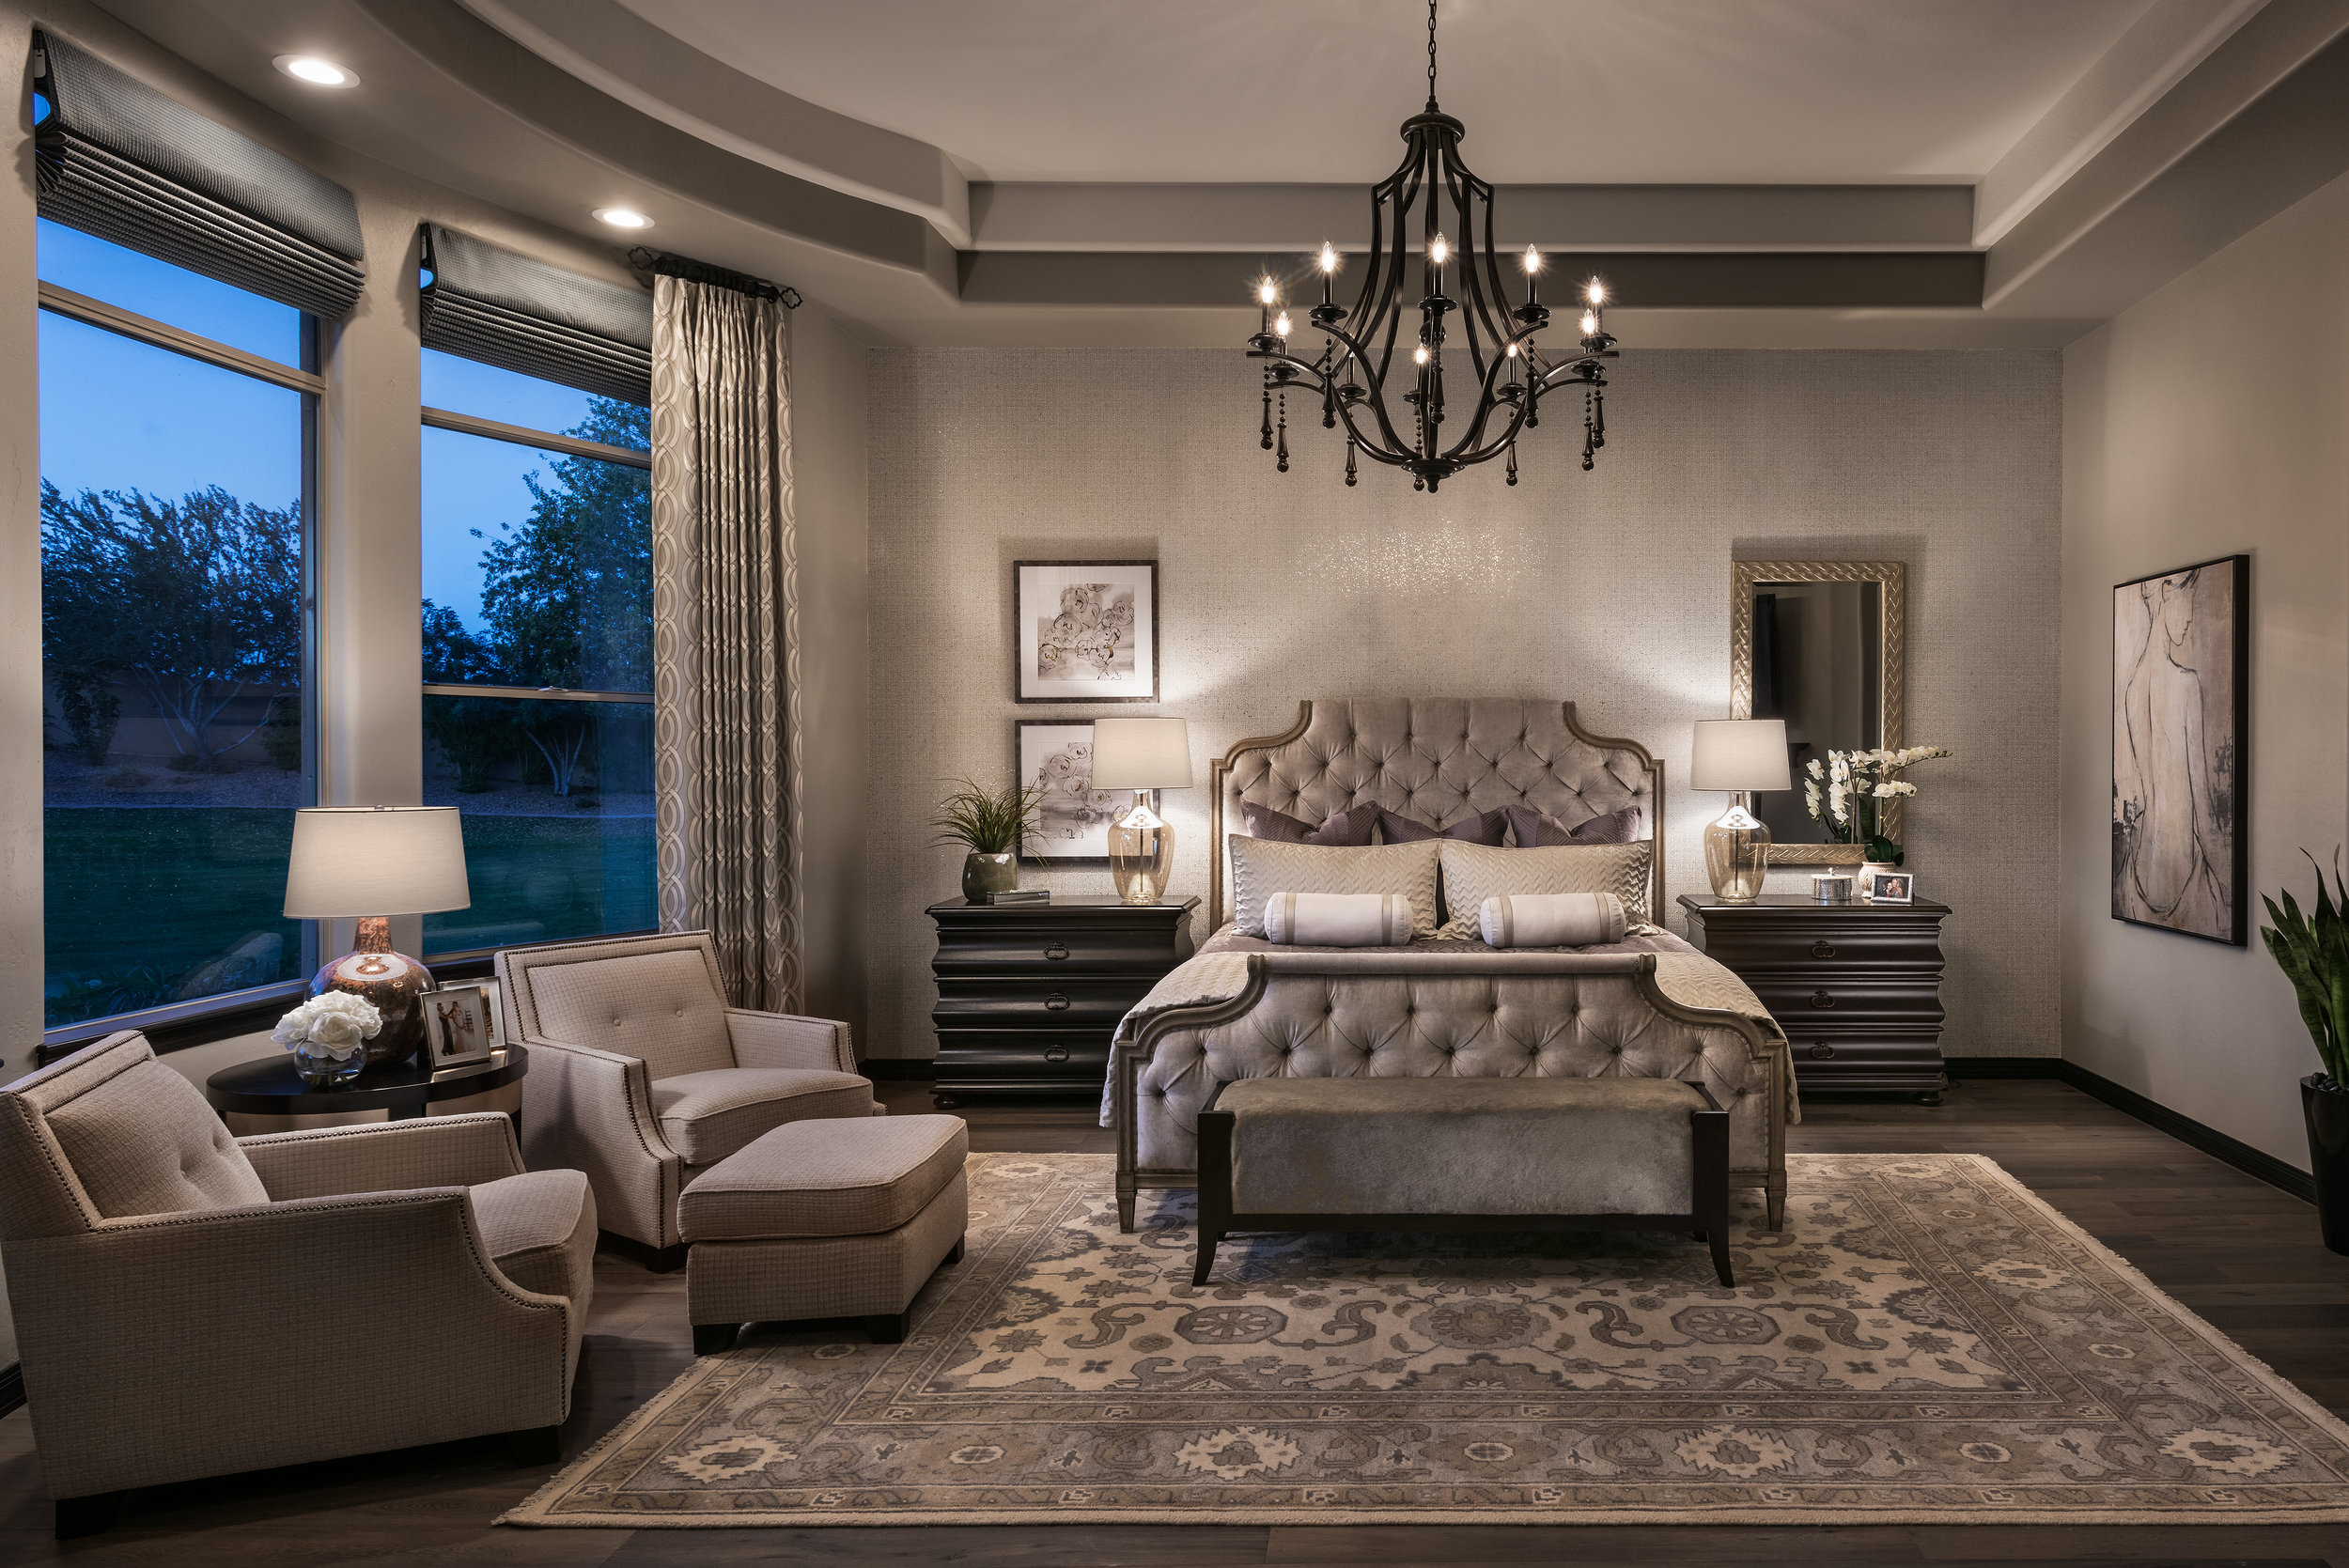 Adding sparkle to this room with embellished wall-covering on the headboard wall along with the new chandelier this master bedroom comes to life.